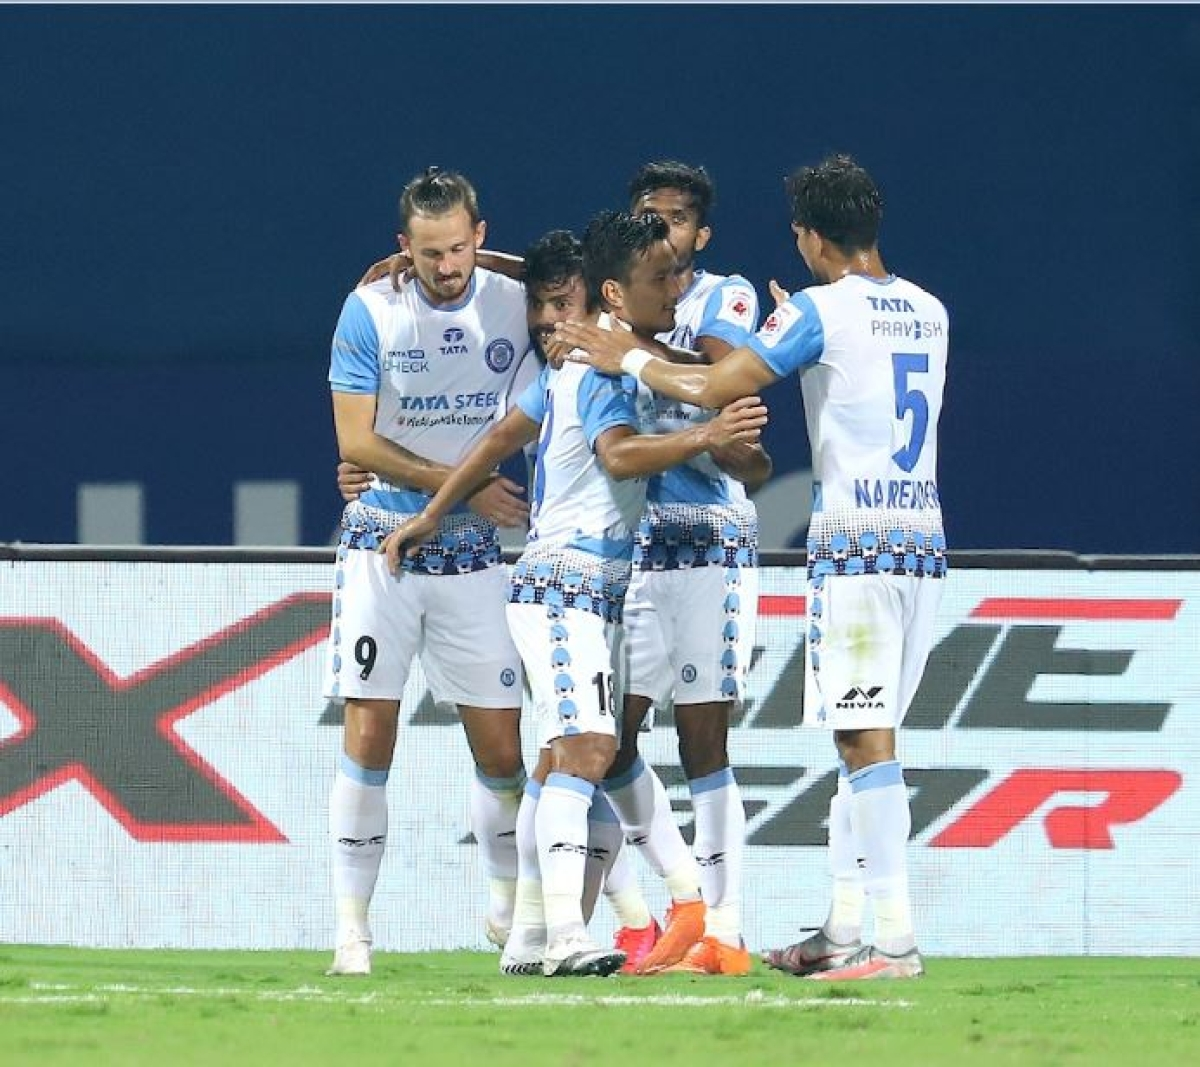 Jamshepur players celebrate after the match